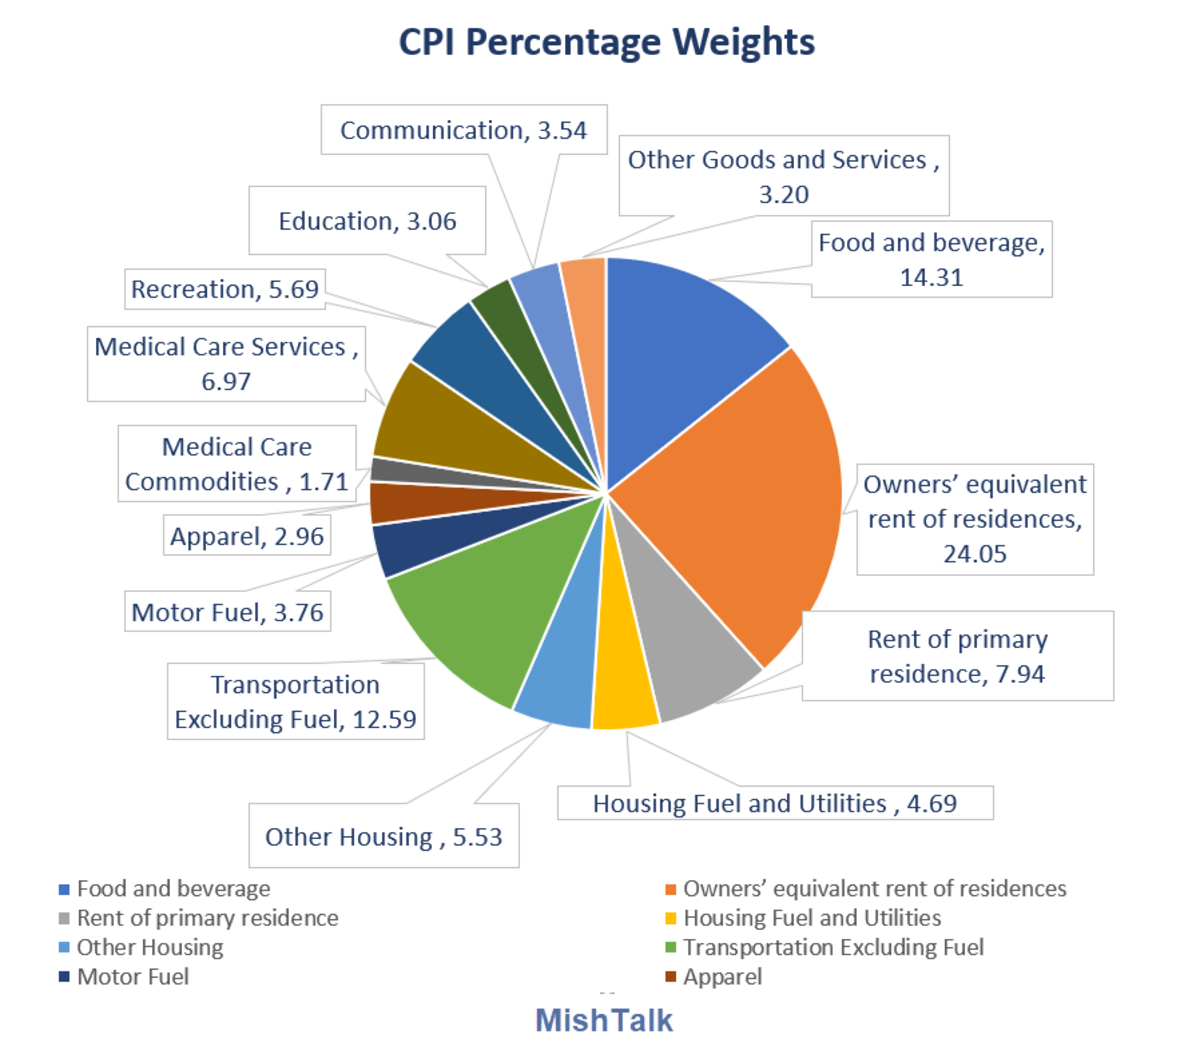 CPI percentage weights